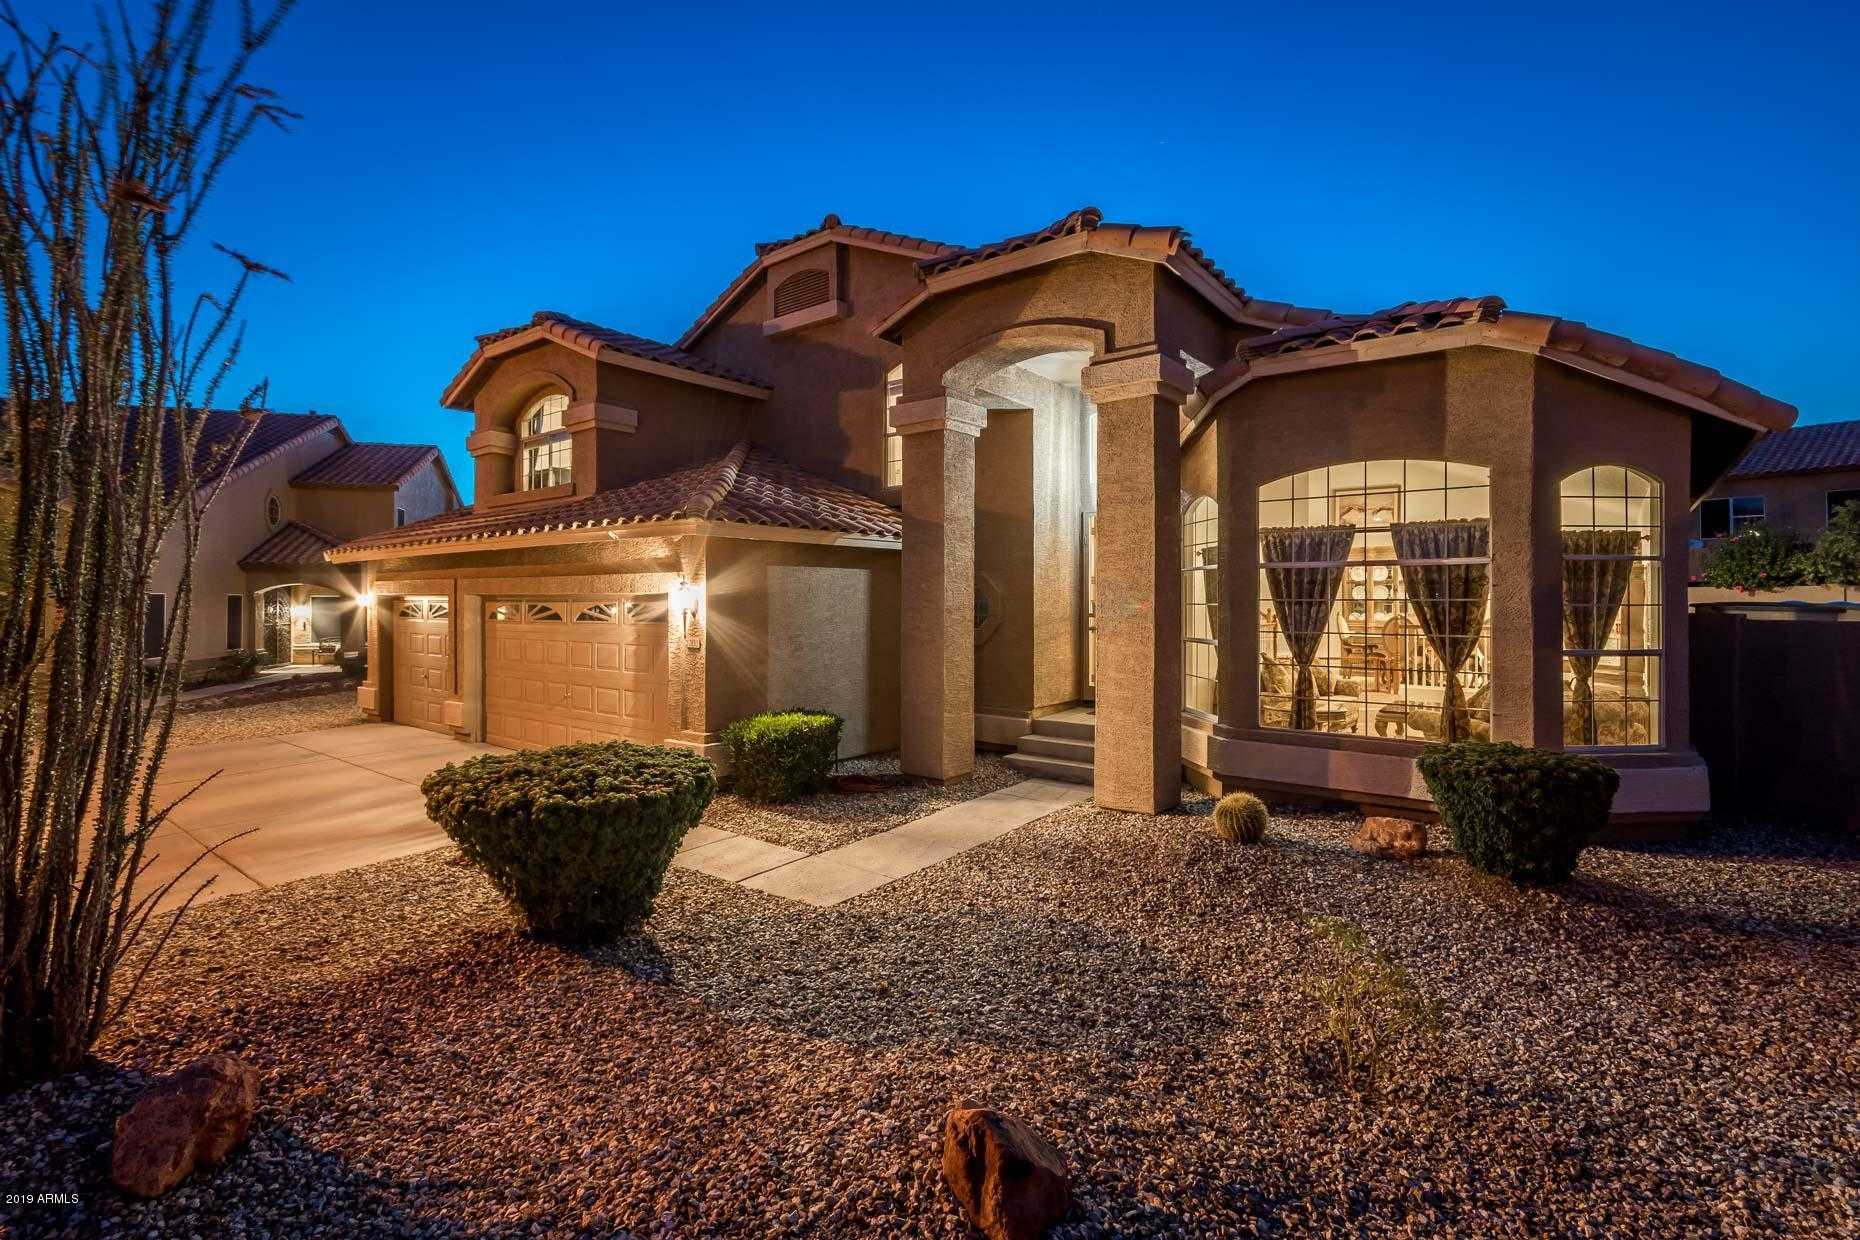 $430,000 - 5Br/3Ba - Home for Sale in Continental At Arrowhead Ranch, Glendale